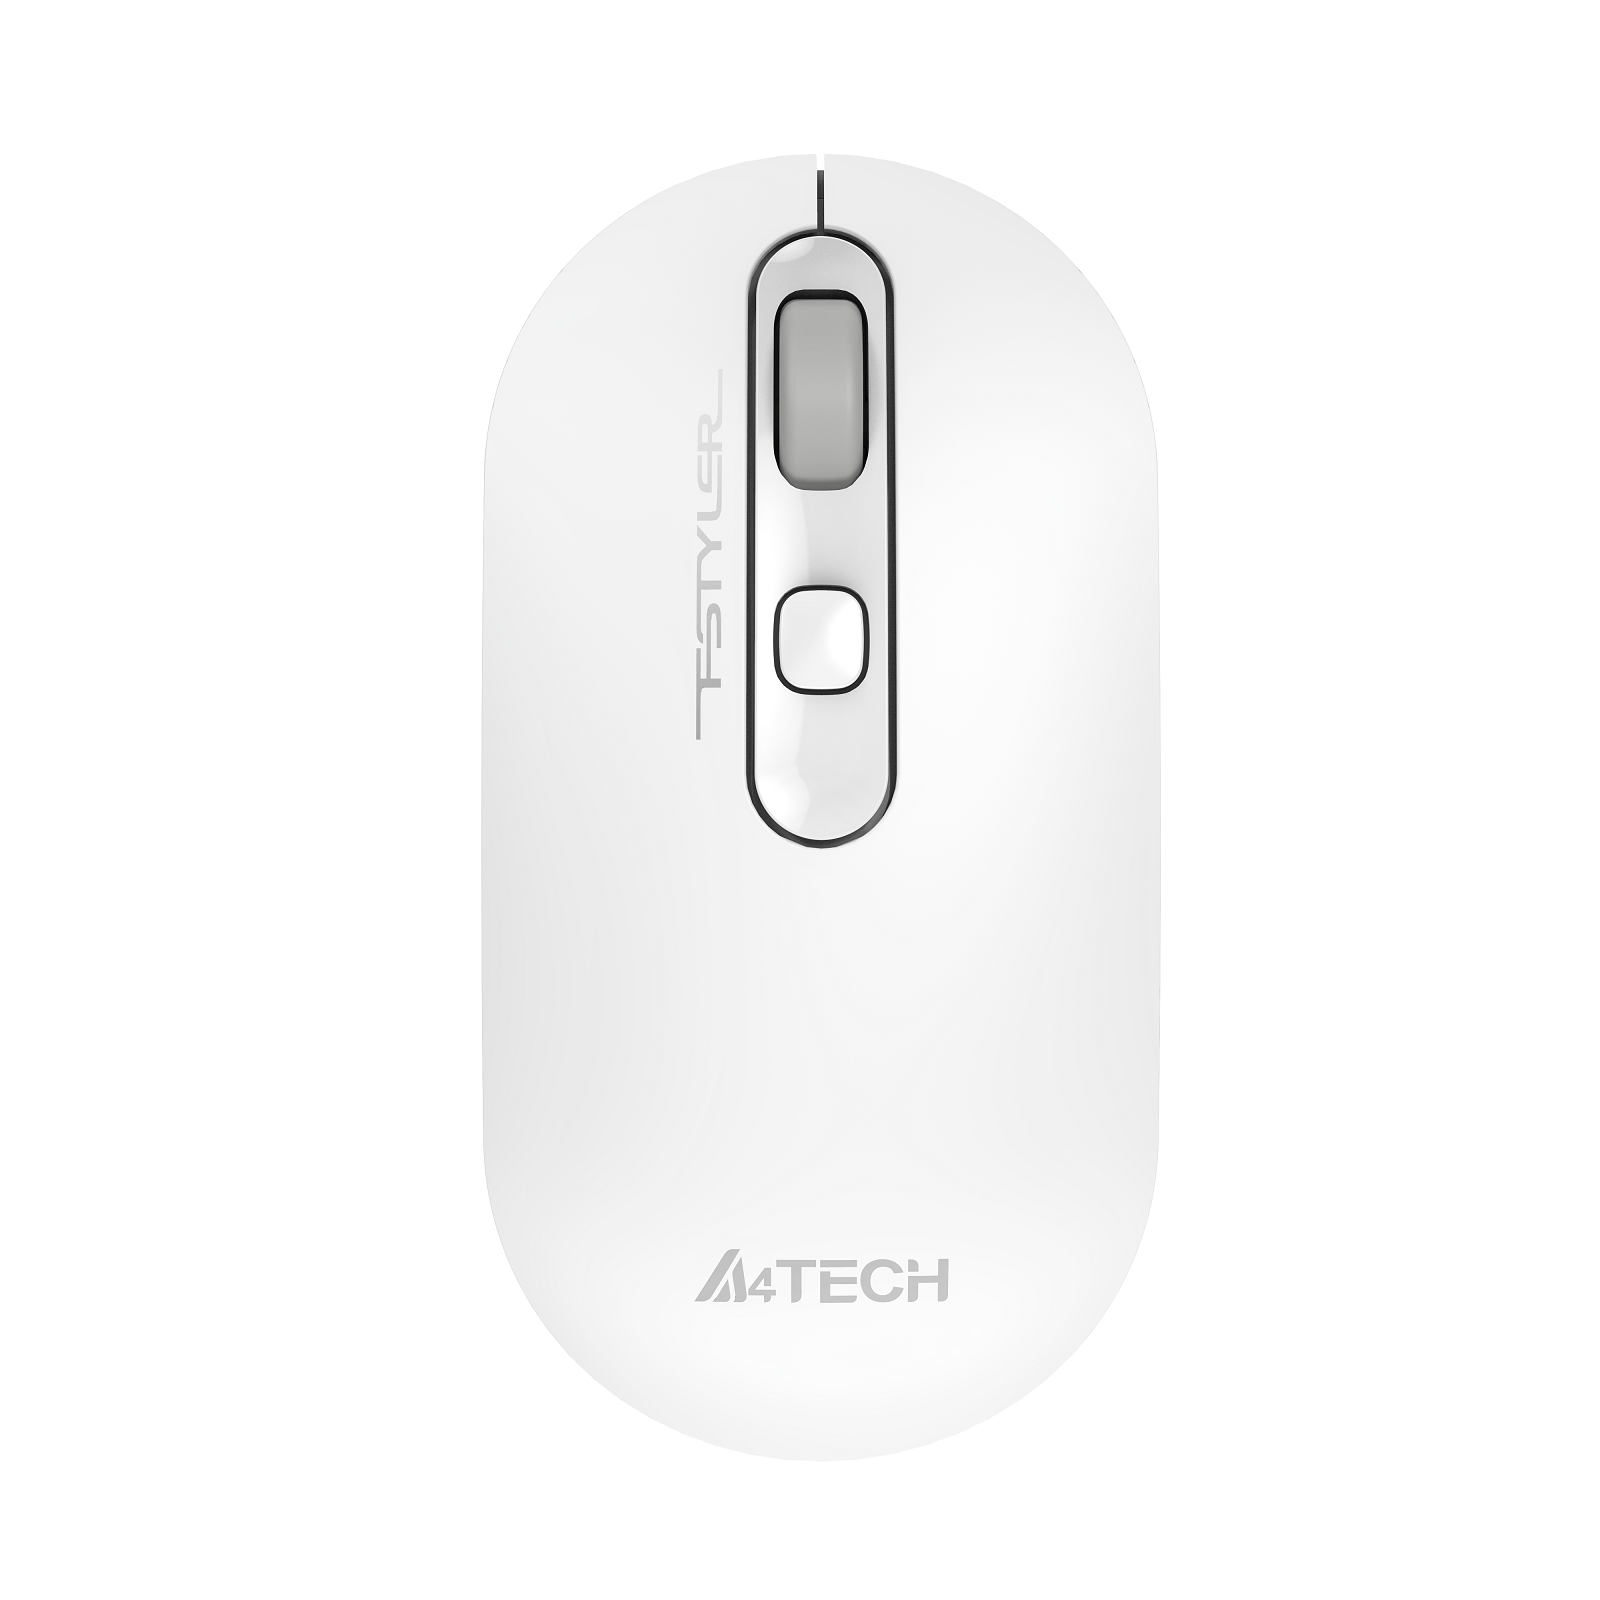 A4 TECH FG20 OPTIK MOUSE NANO USB BEYAZ 2000 DPI